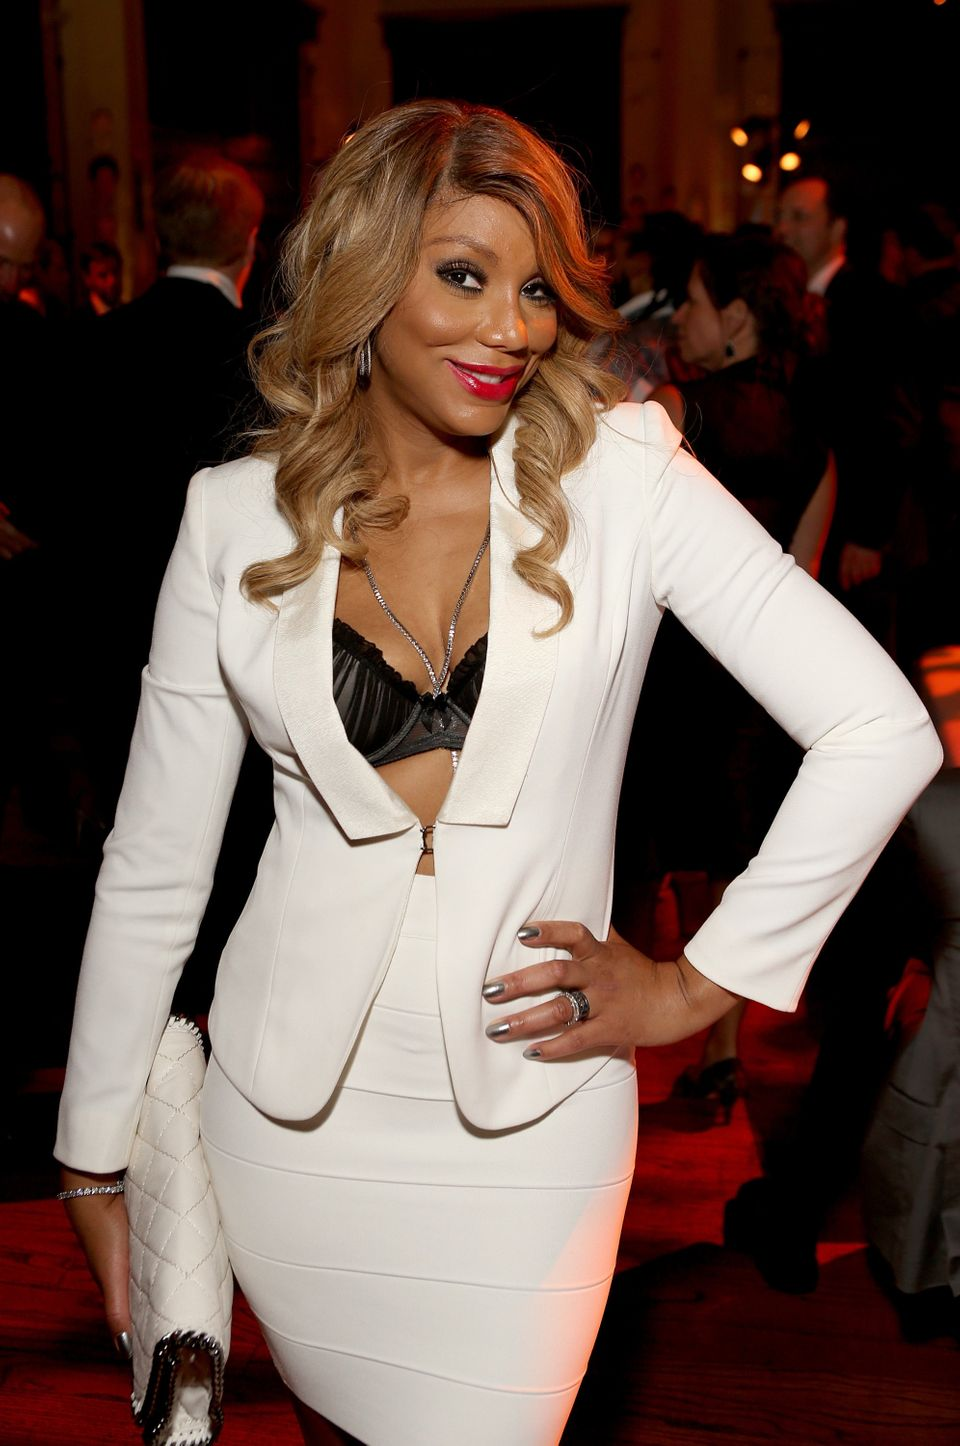 LOS ANGELES, CA - FEBRUARY 08:  Singer Tamar Braxton attends the Sony Music Entertainment 2015 Post-Grammy Reception at The P